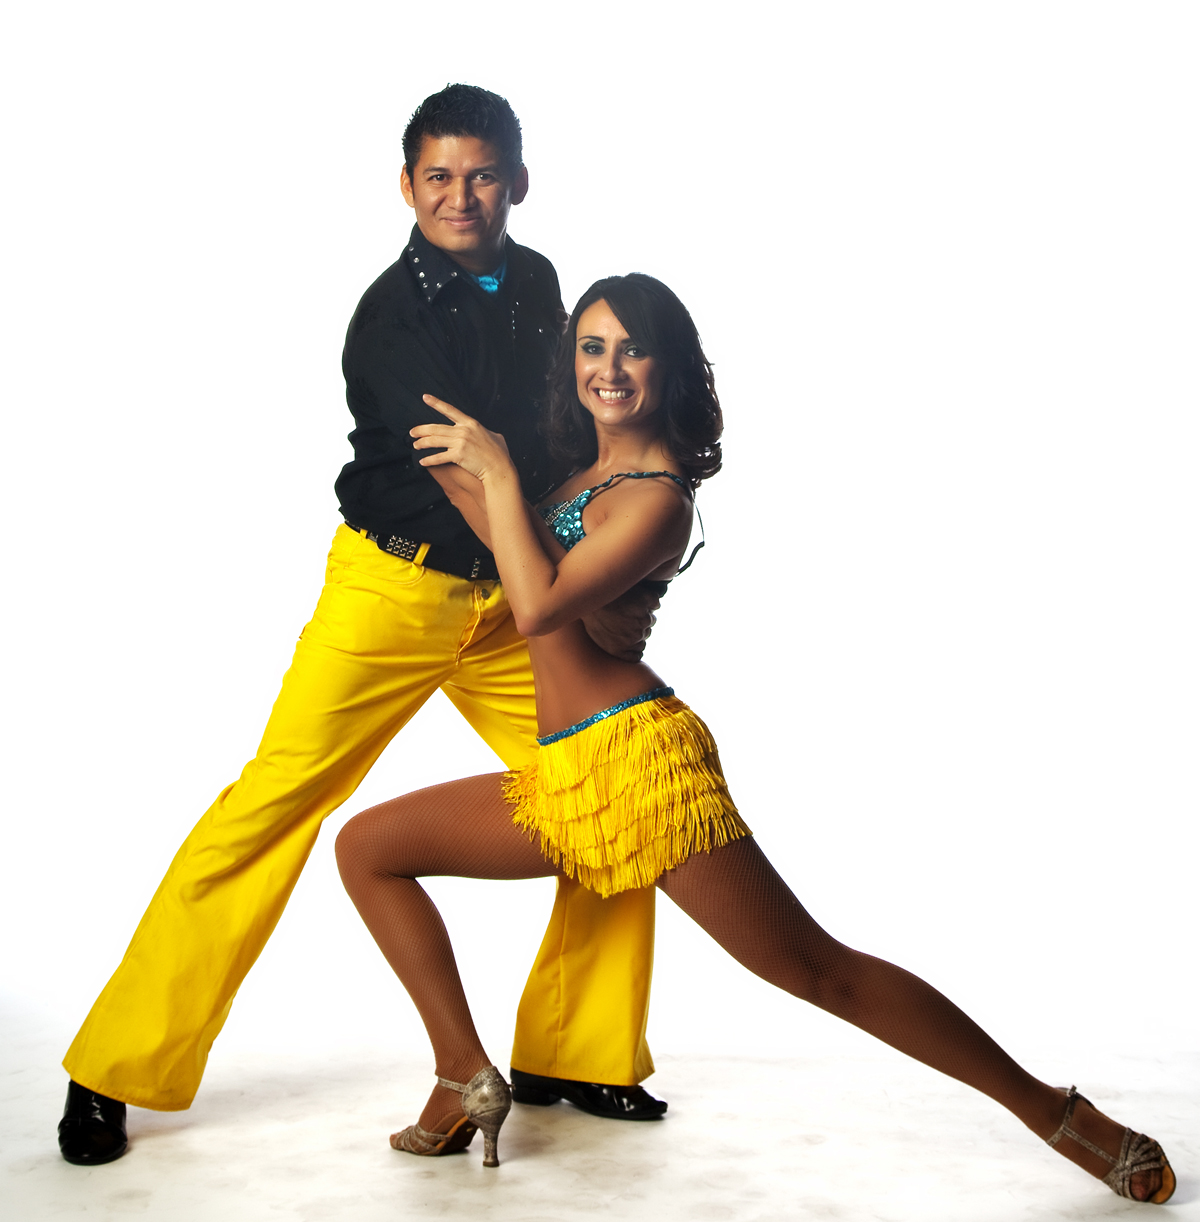 Images Of Salsa Dancers - ClipArt Best